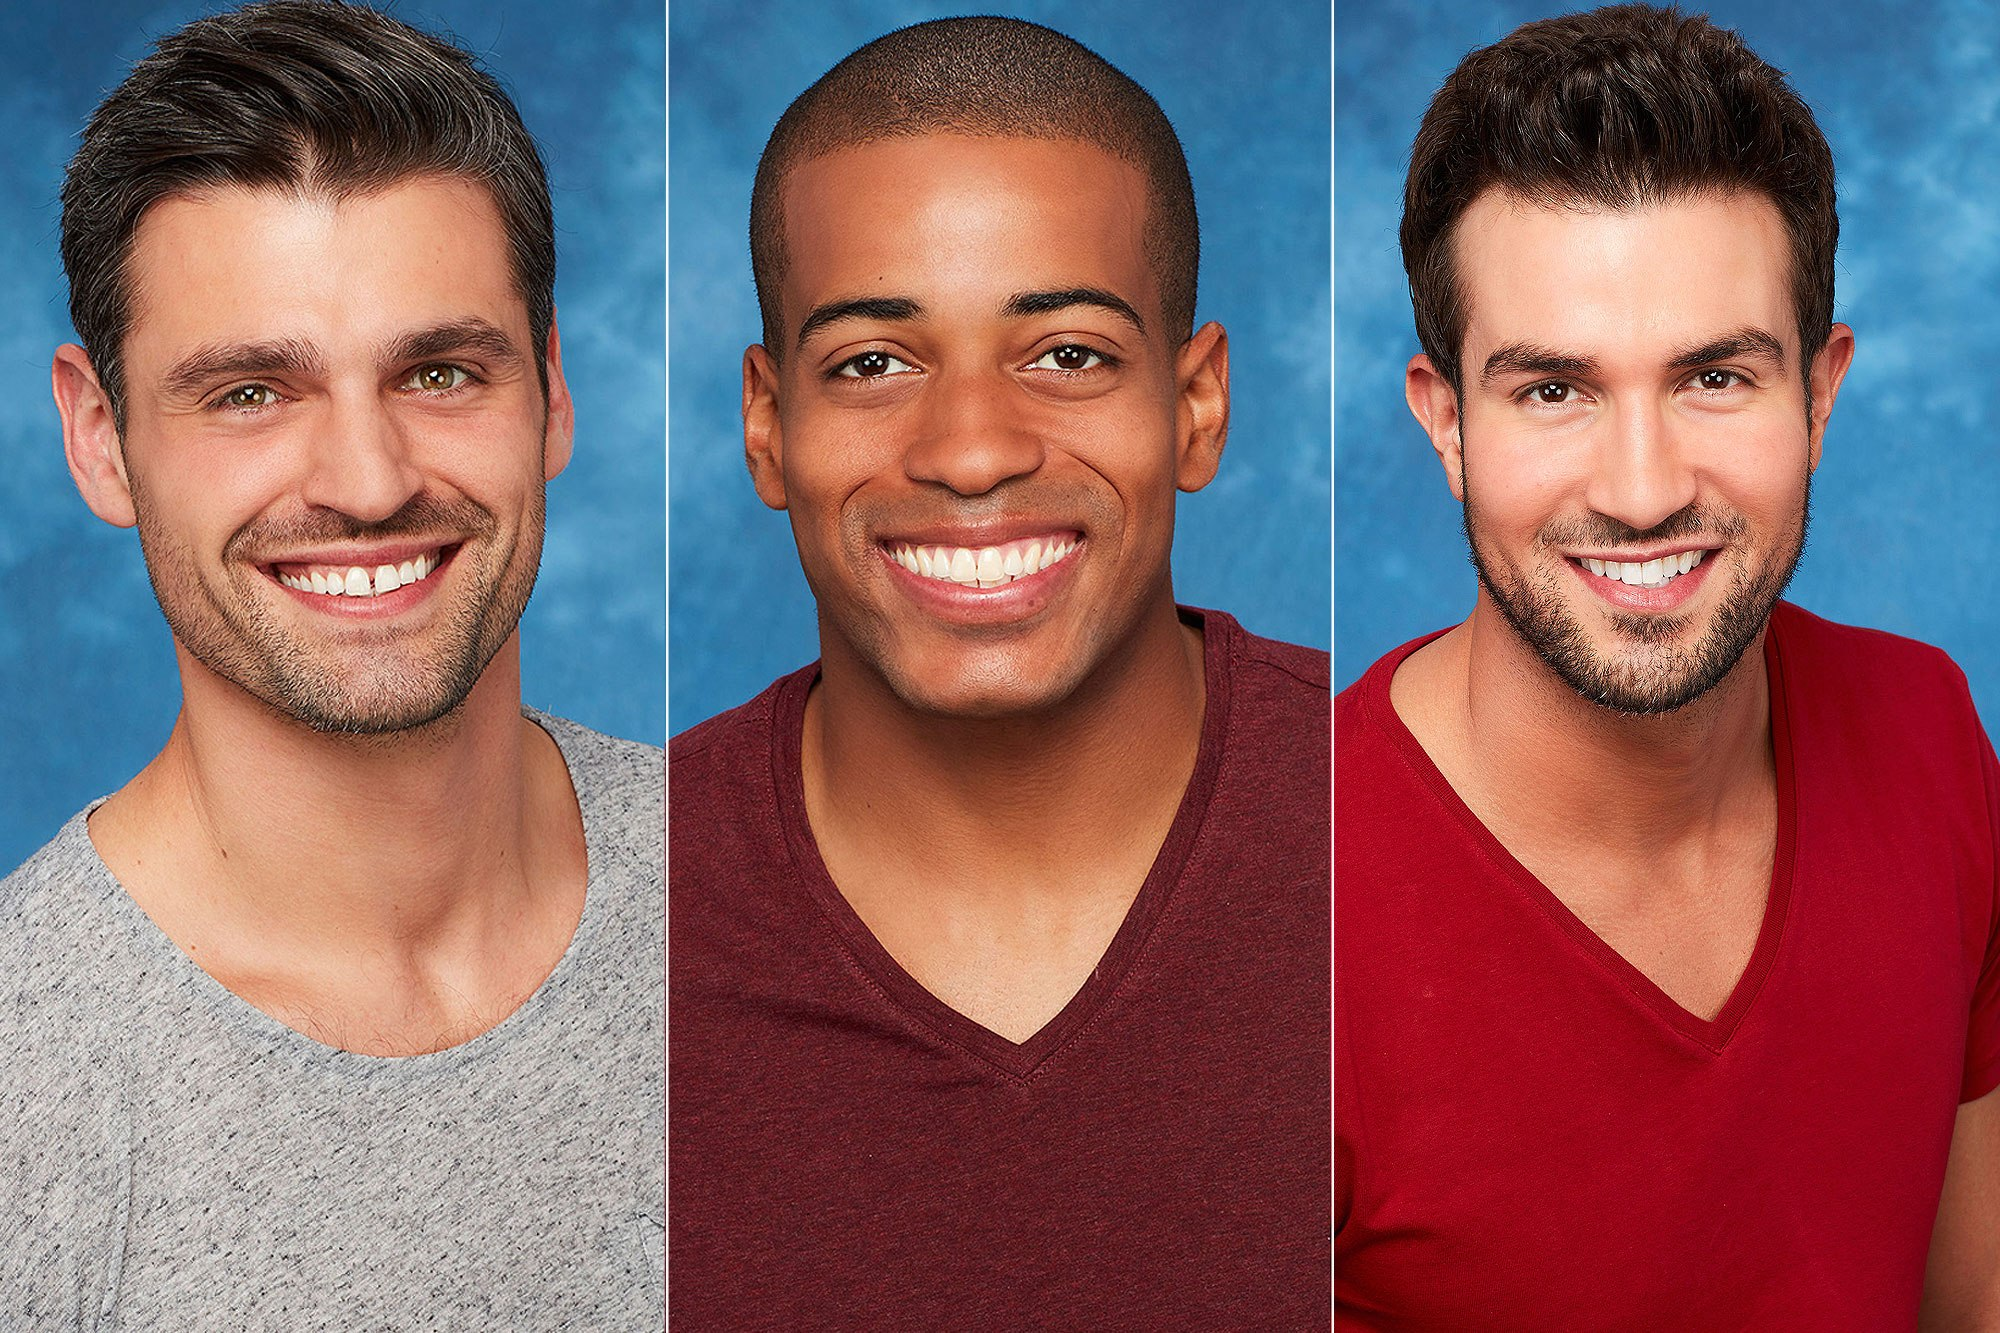 Rachel Lindsay Does Not Sleep With Her Final 3 In Fantasy Suites